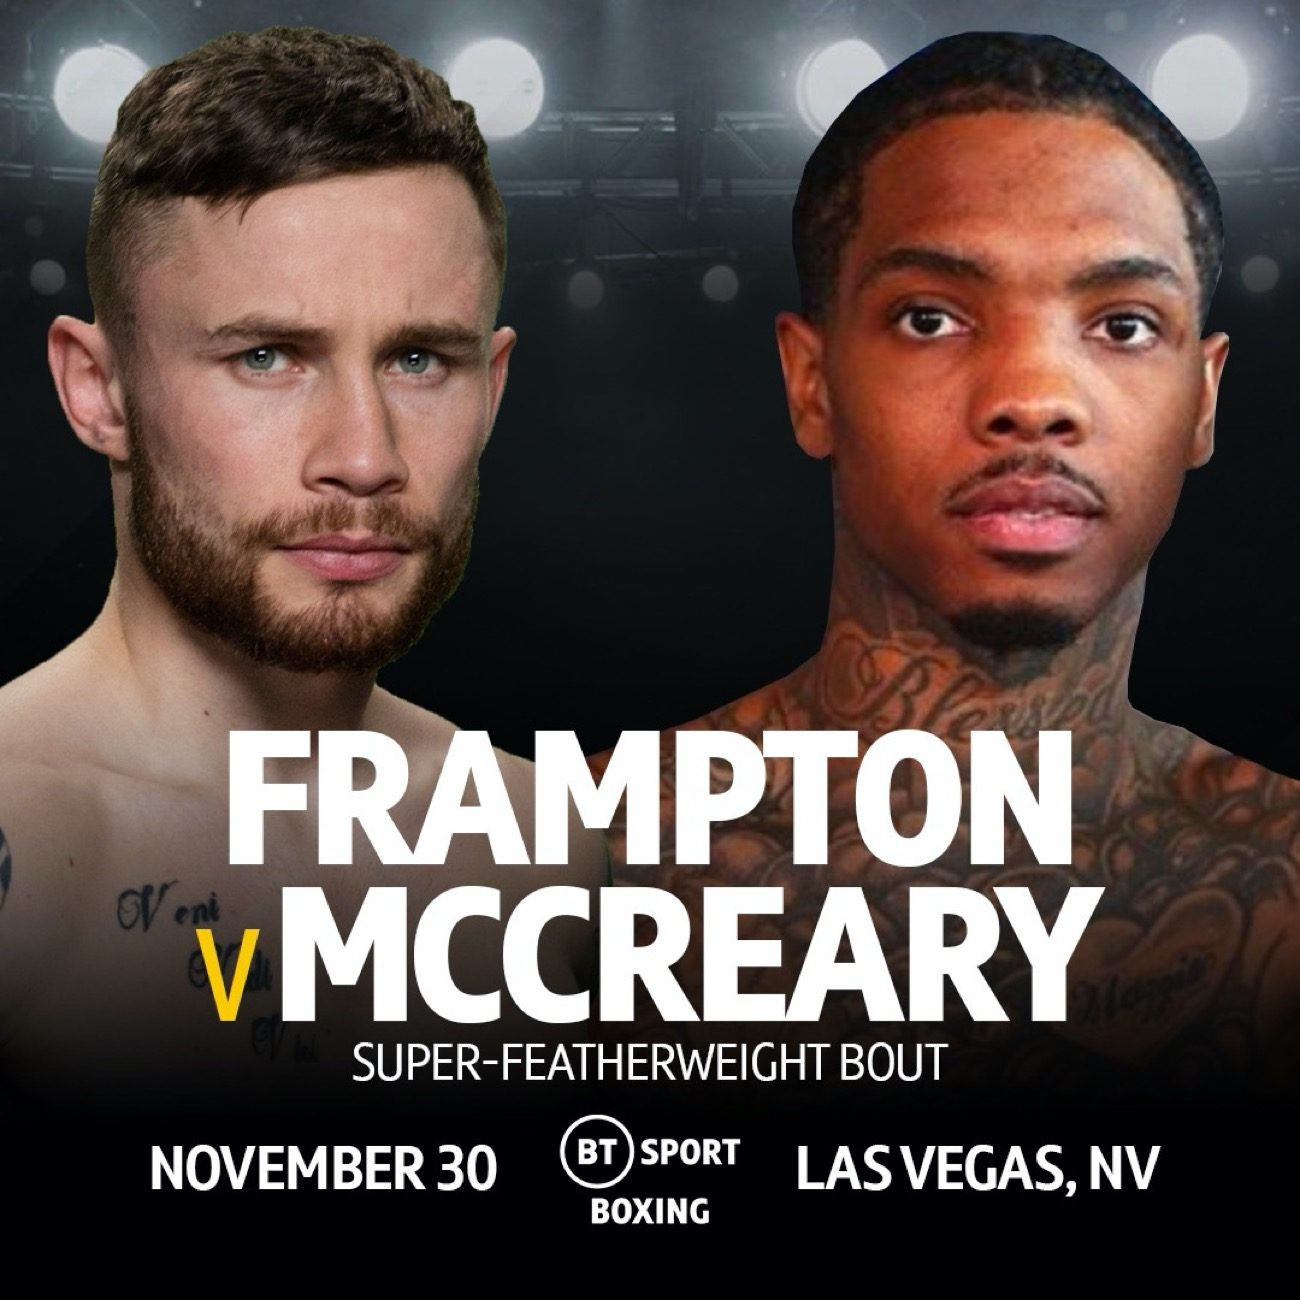 Carl Frampton Frampton vs. McCreary Tyler McCreary